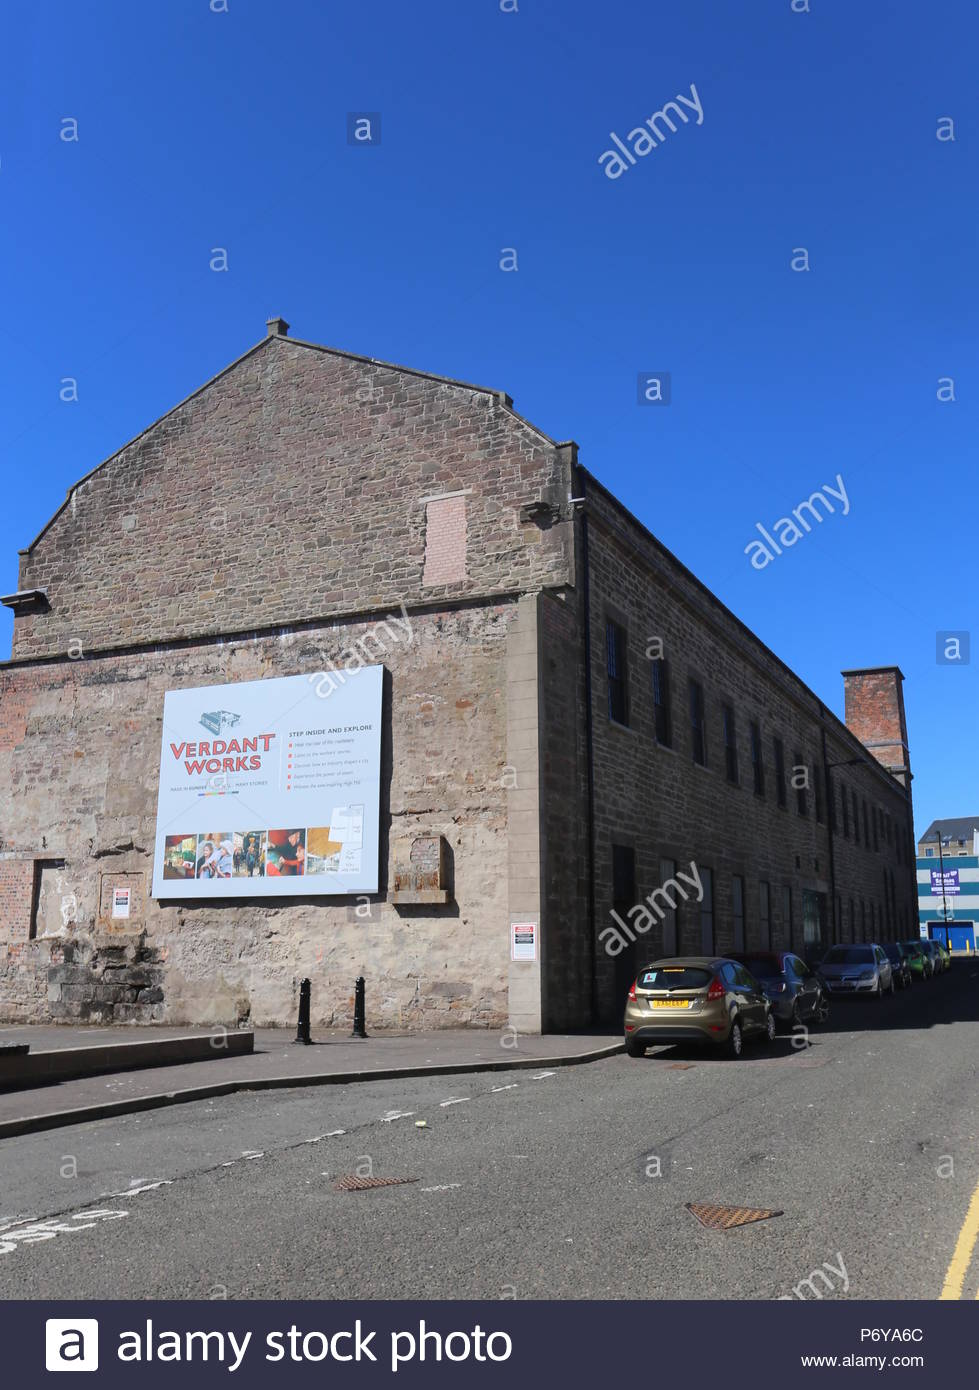 Exterior of Verdant Works Jute Mill Museum Dundee Scotland  July 2018 - Stock Image